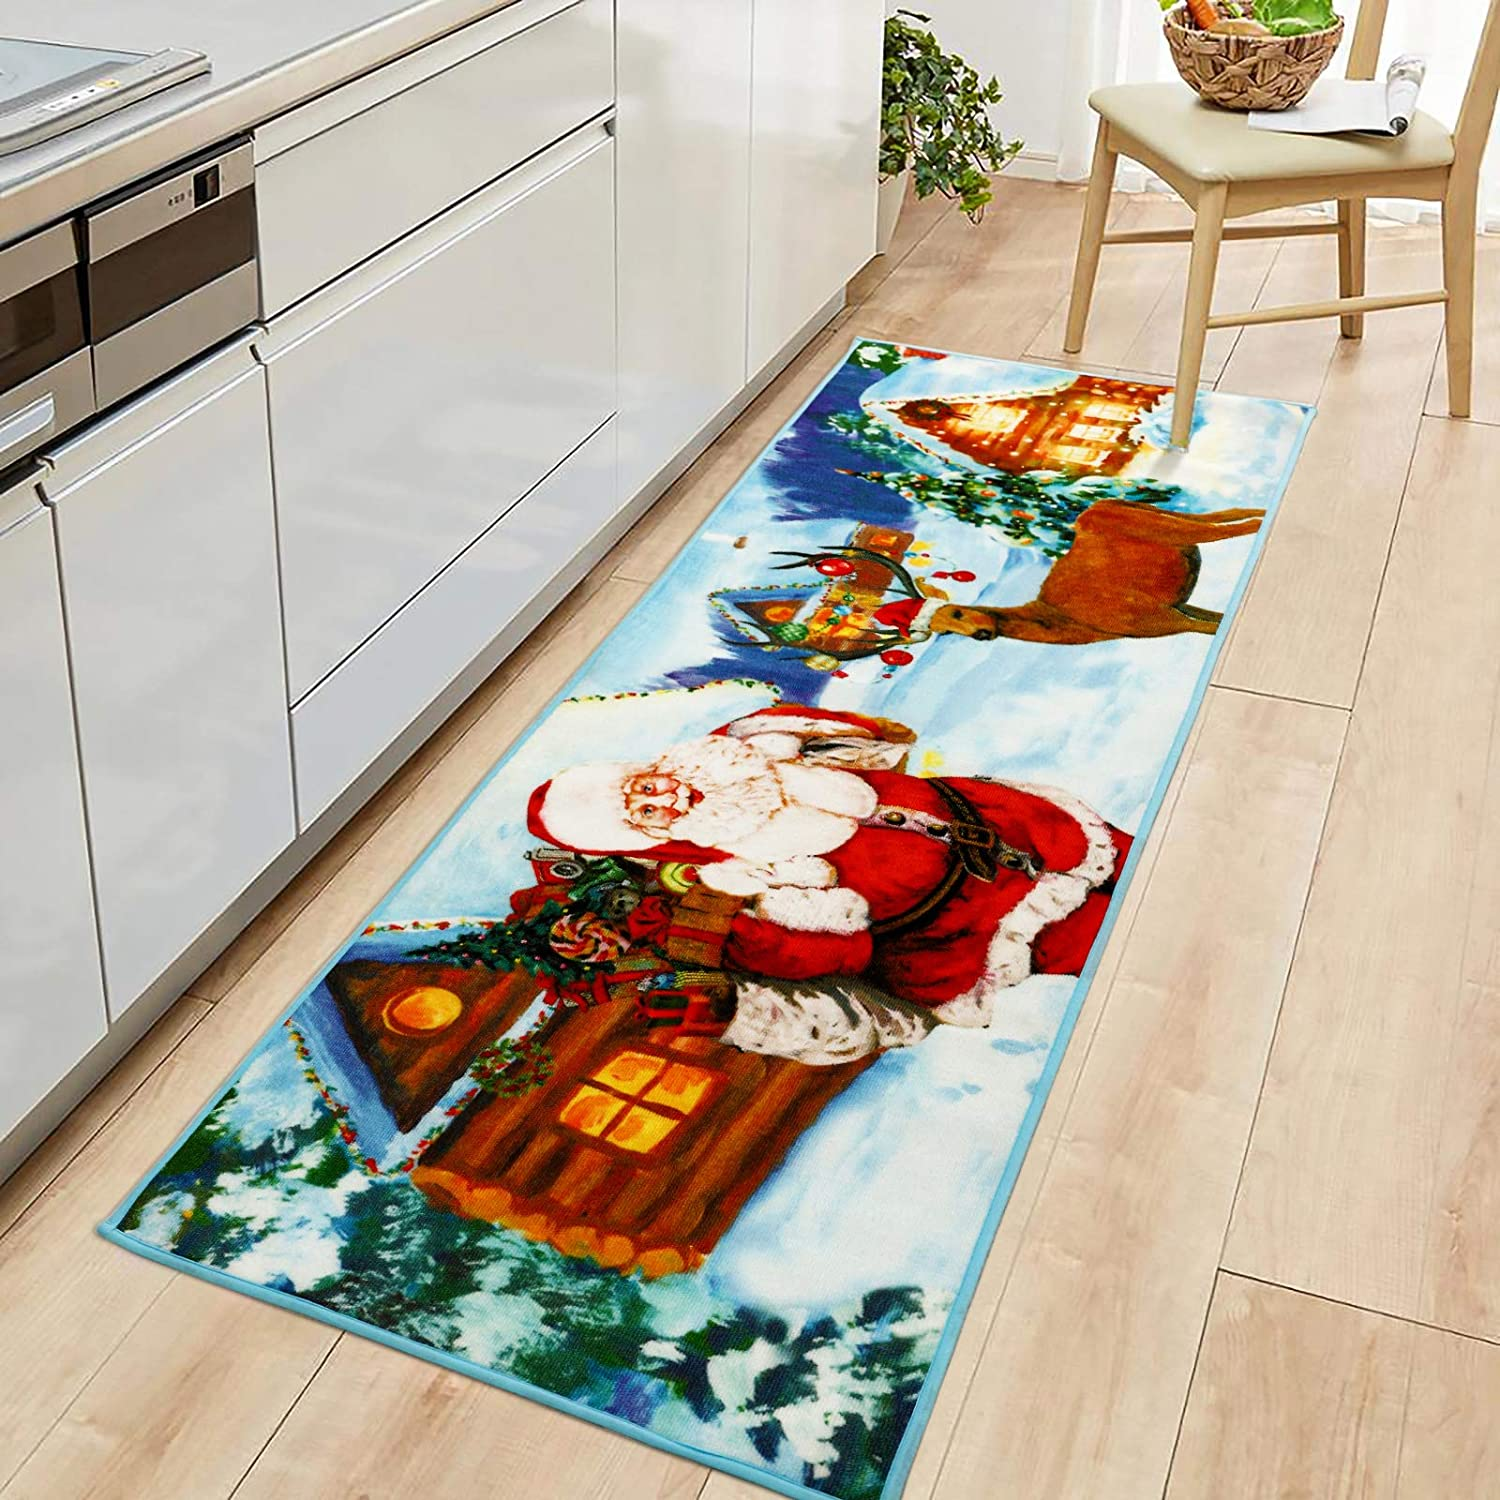 Goffee Christmas Area Rugs Santa Claus Indoor Rug for Xmas Holiday Decoration, Non-Slip Xmas Cute Deer Door Mat Christmas Welcome Carpet for Bedroom Living Room Kitchen Fireplace, 2ft x 6ft